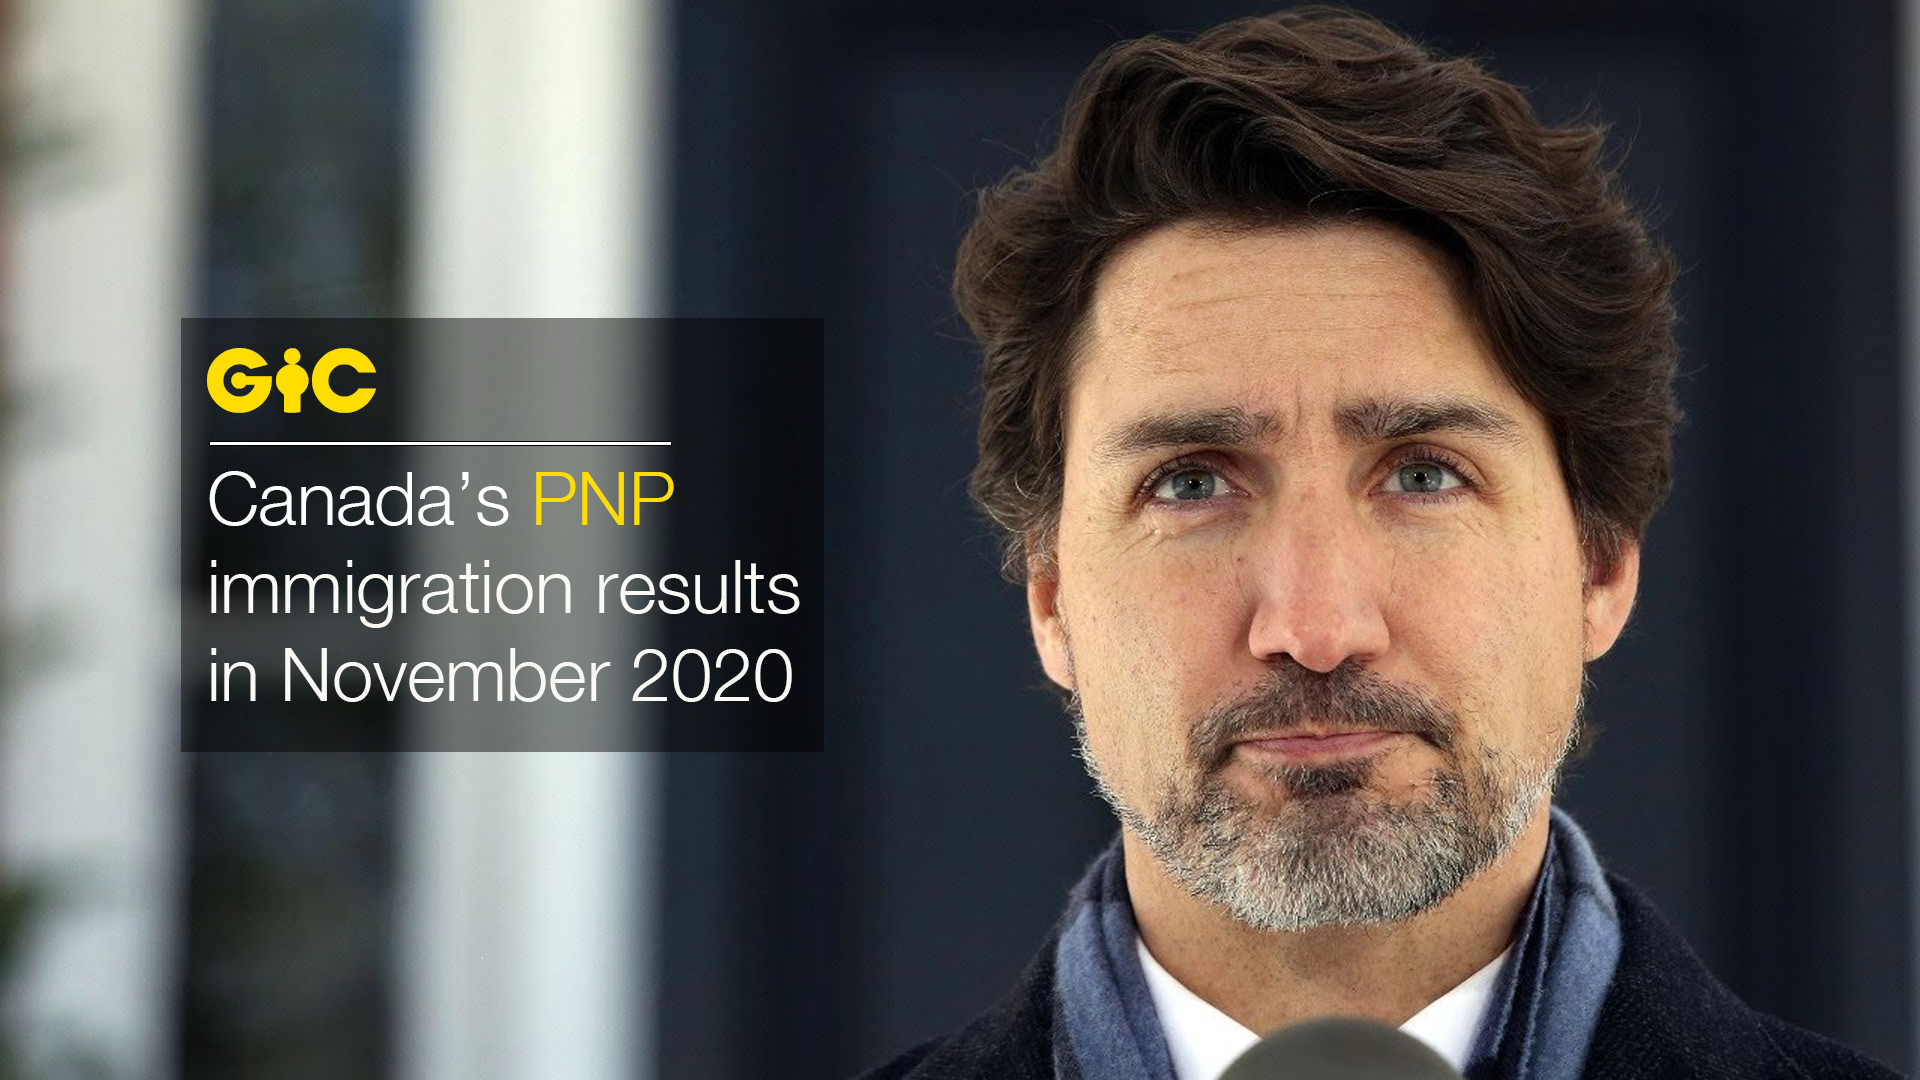 Canada's PNP immigration results in November 2020